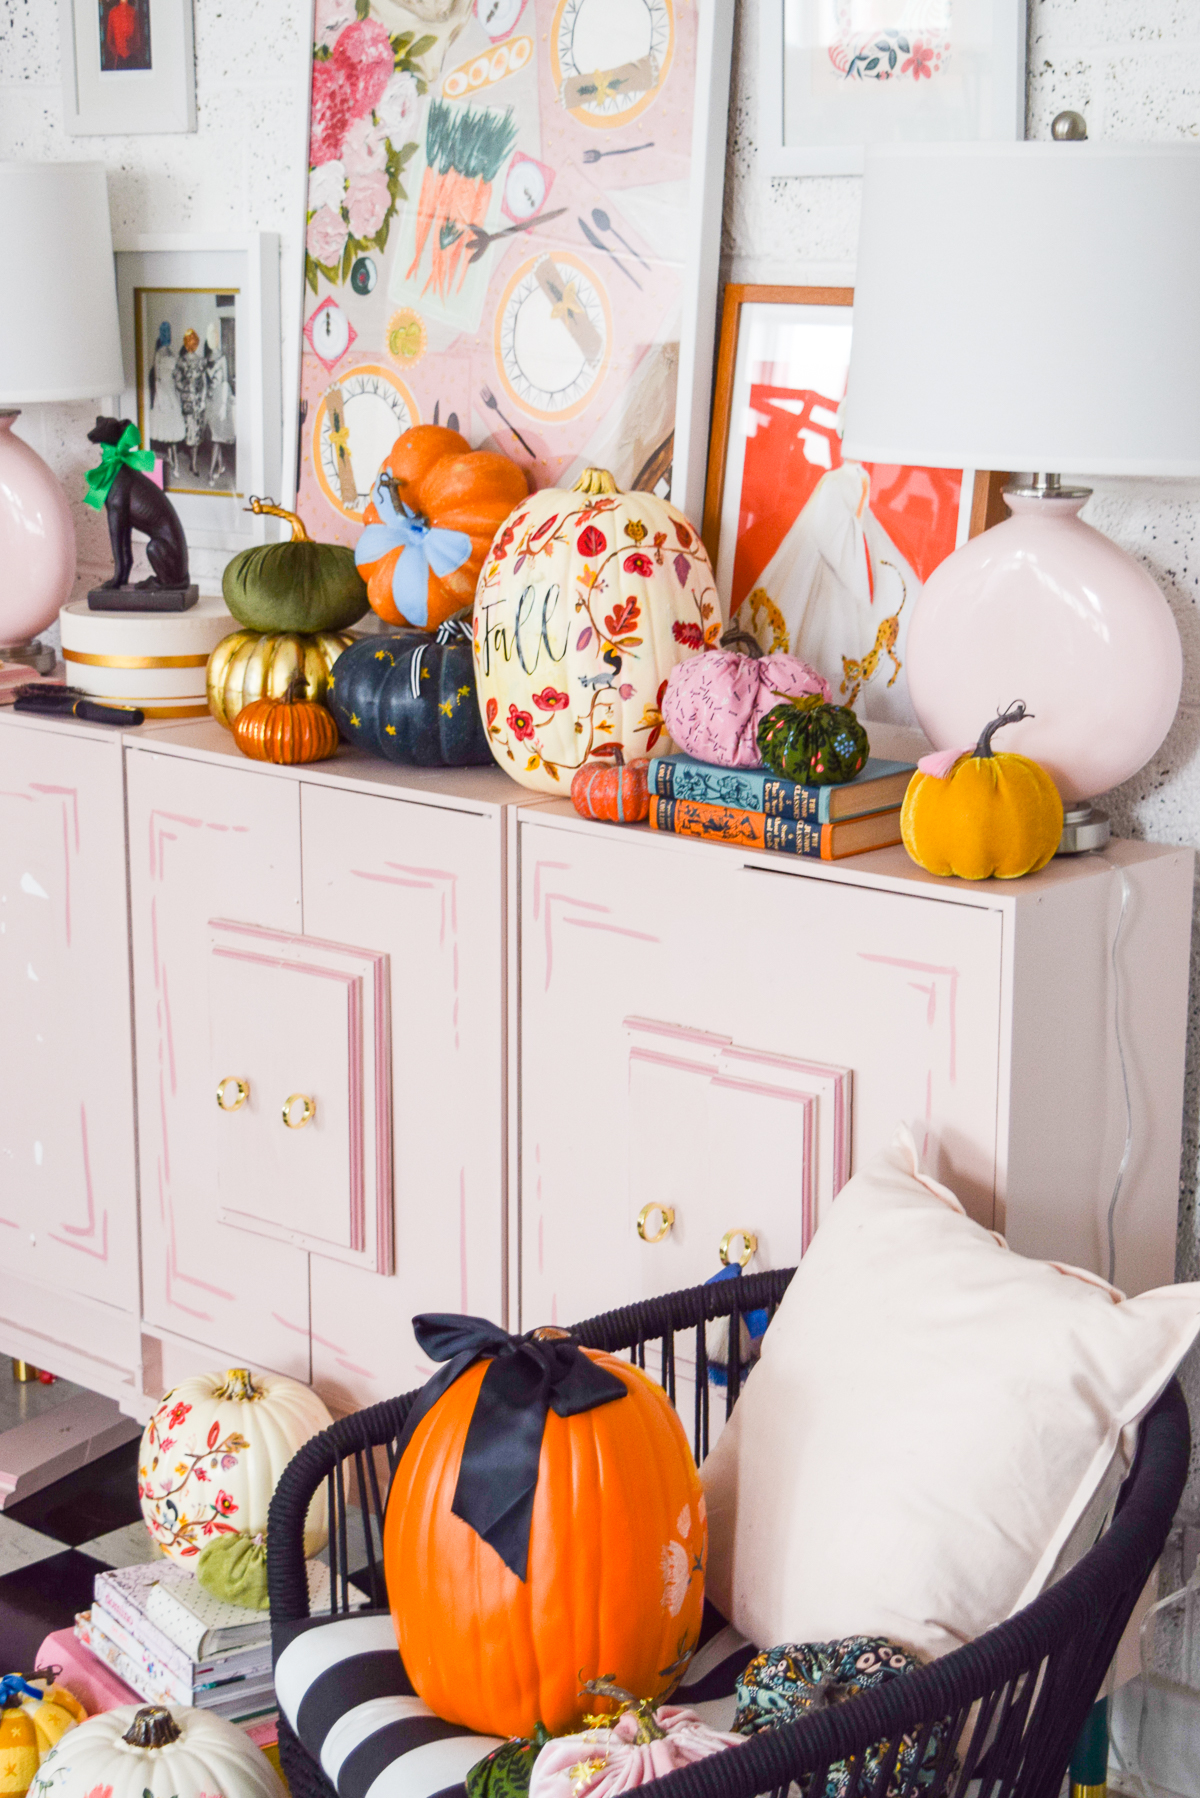 angled shot of a pink dresser with various pumpkins